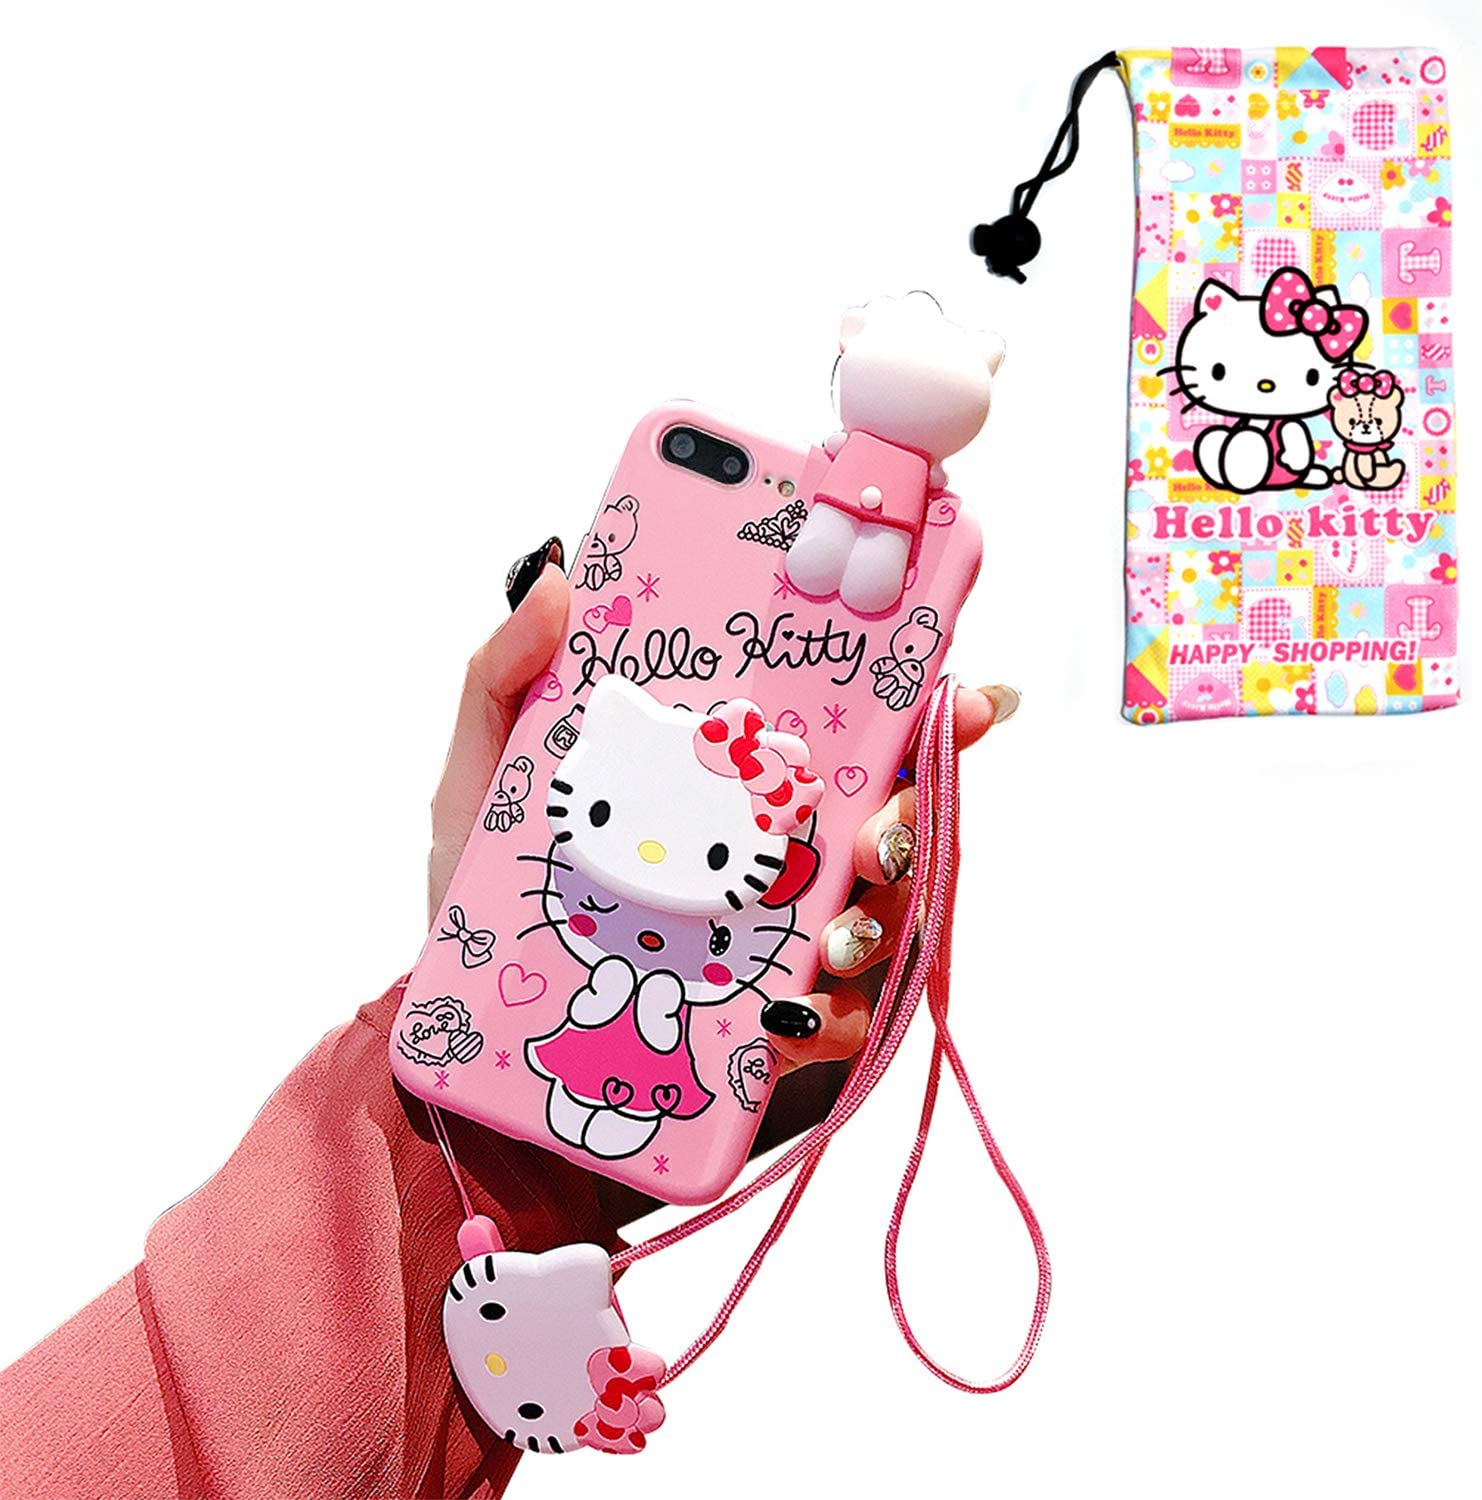 "Cute Kitty iPhone 8 Plus Case/iPhone 7 Plus Case, 3D Cartoon Kawaii Case for Kids Girls, Funny Animal Character Silicone Cover Case for Apple iPhone 7 Plus, iPhone 8 Plus 5.5"" with Holder Lanyard Doll"